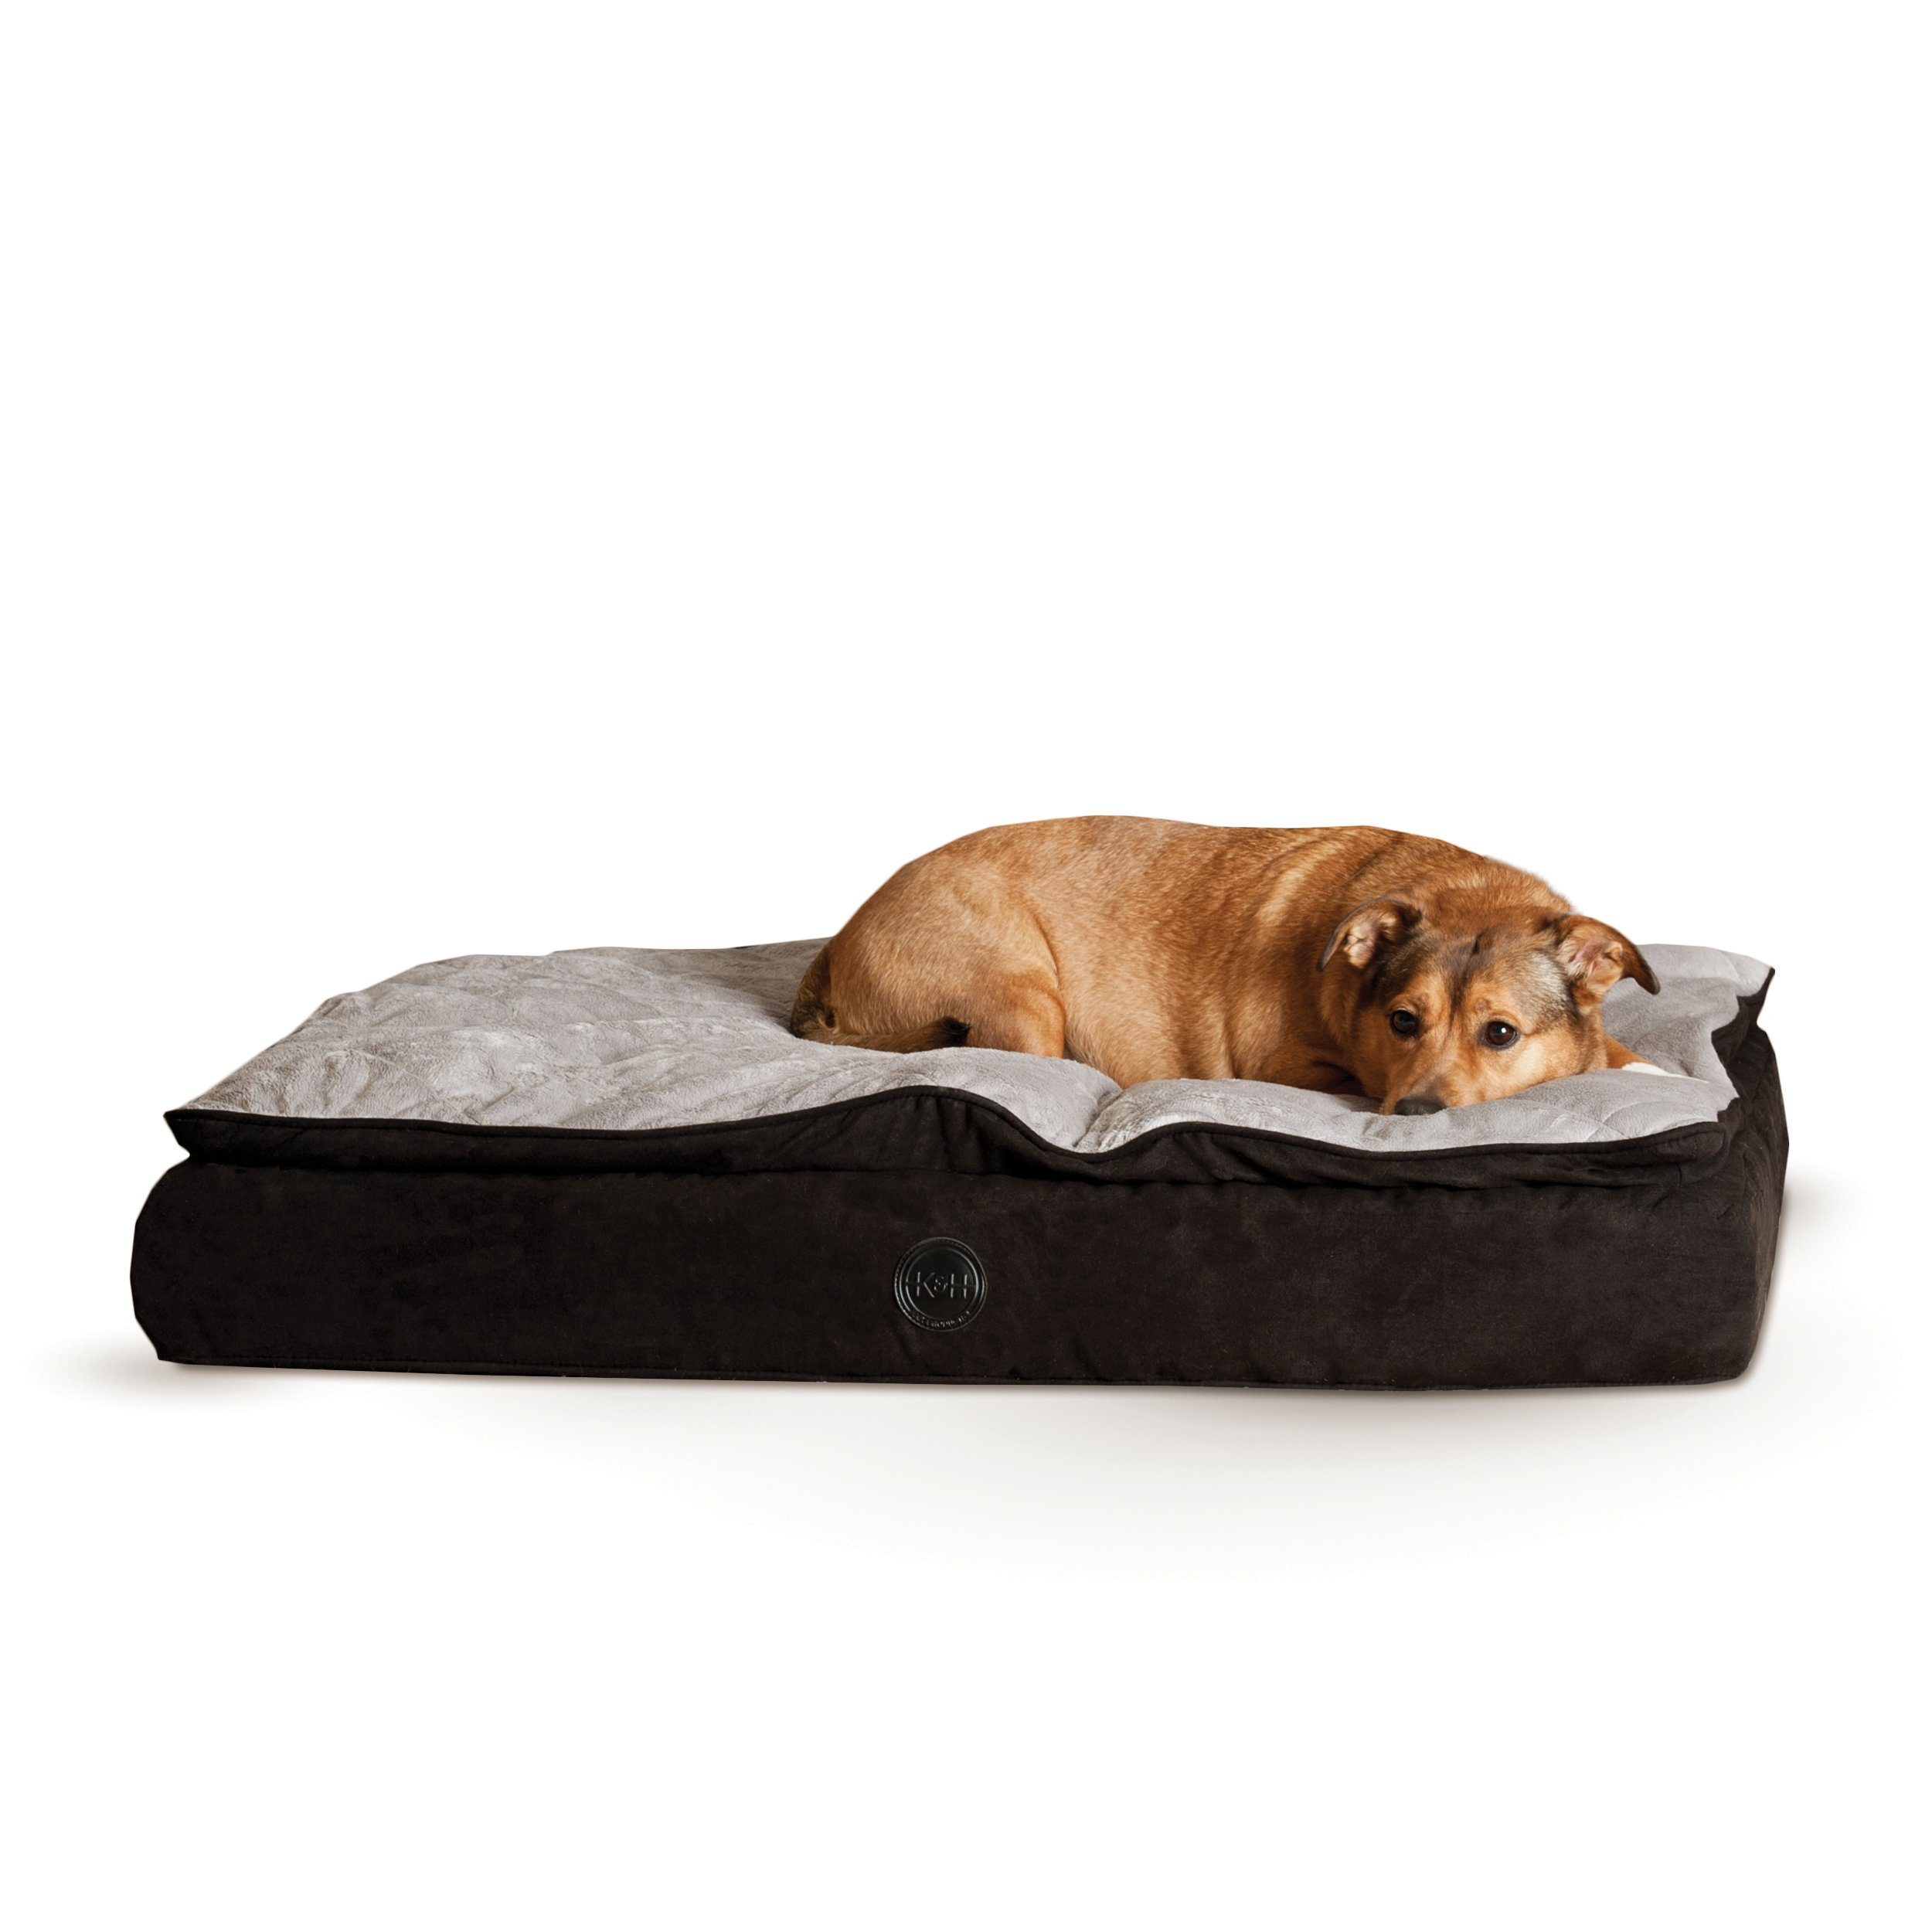 K&H Pet Products Feather-Top Ortho Pet Bed Medium Charcoal/Gray 30'' x 40''